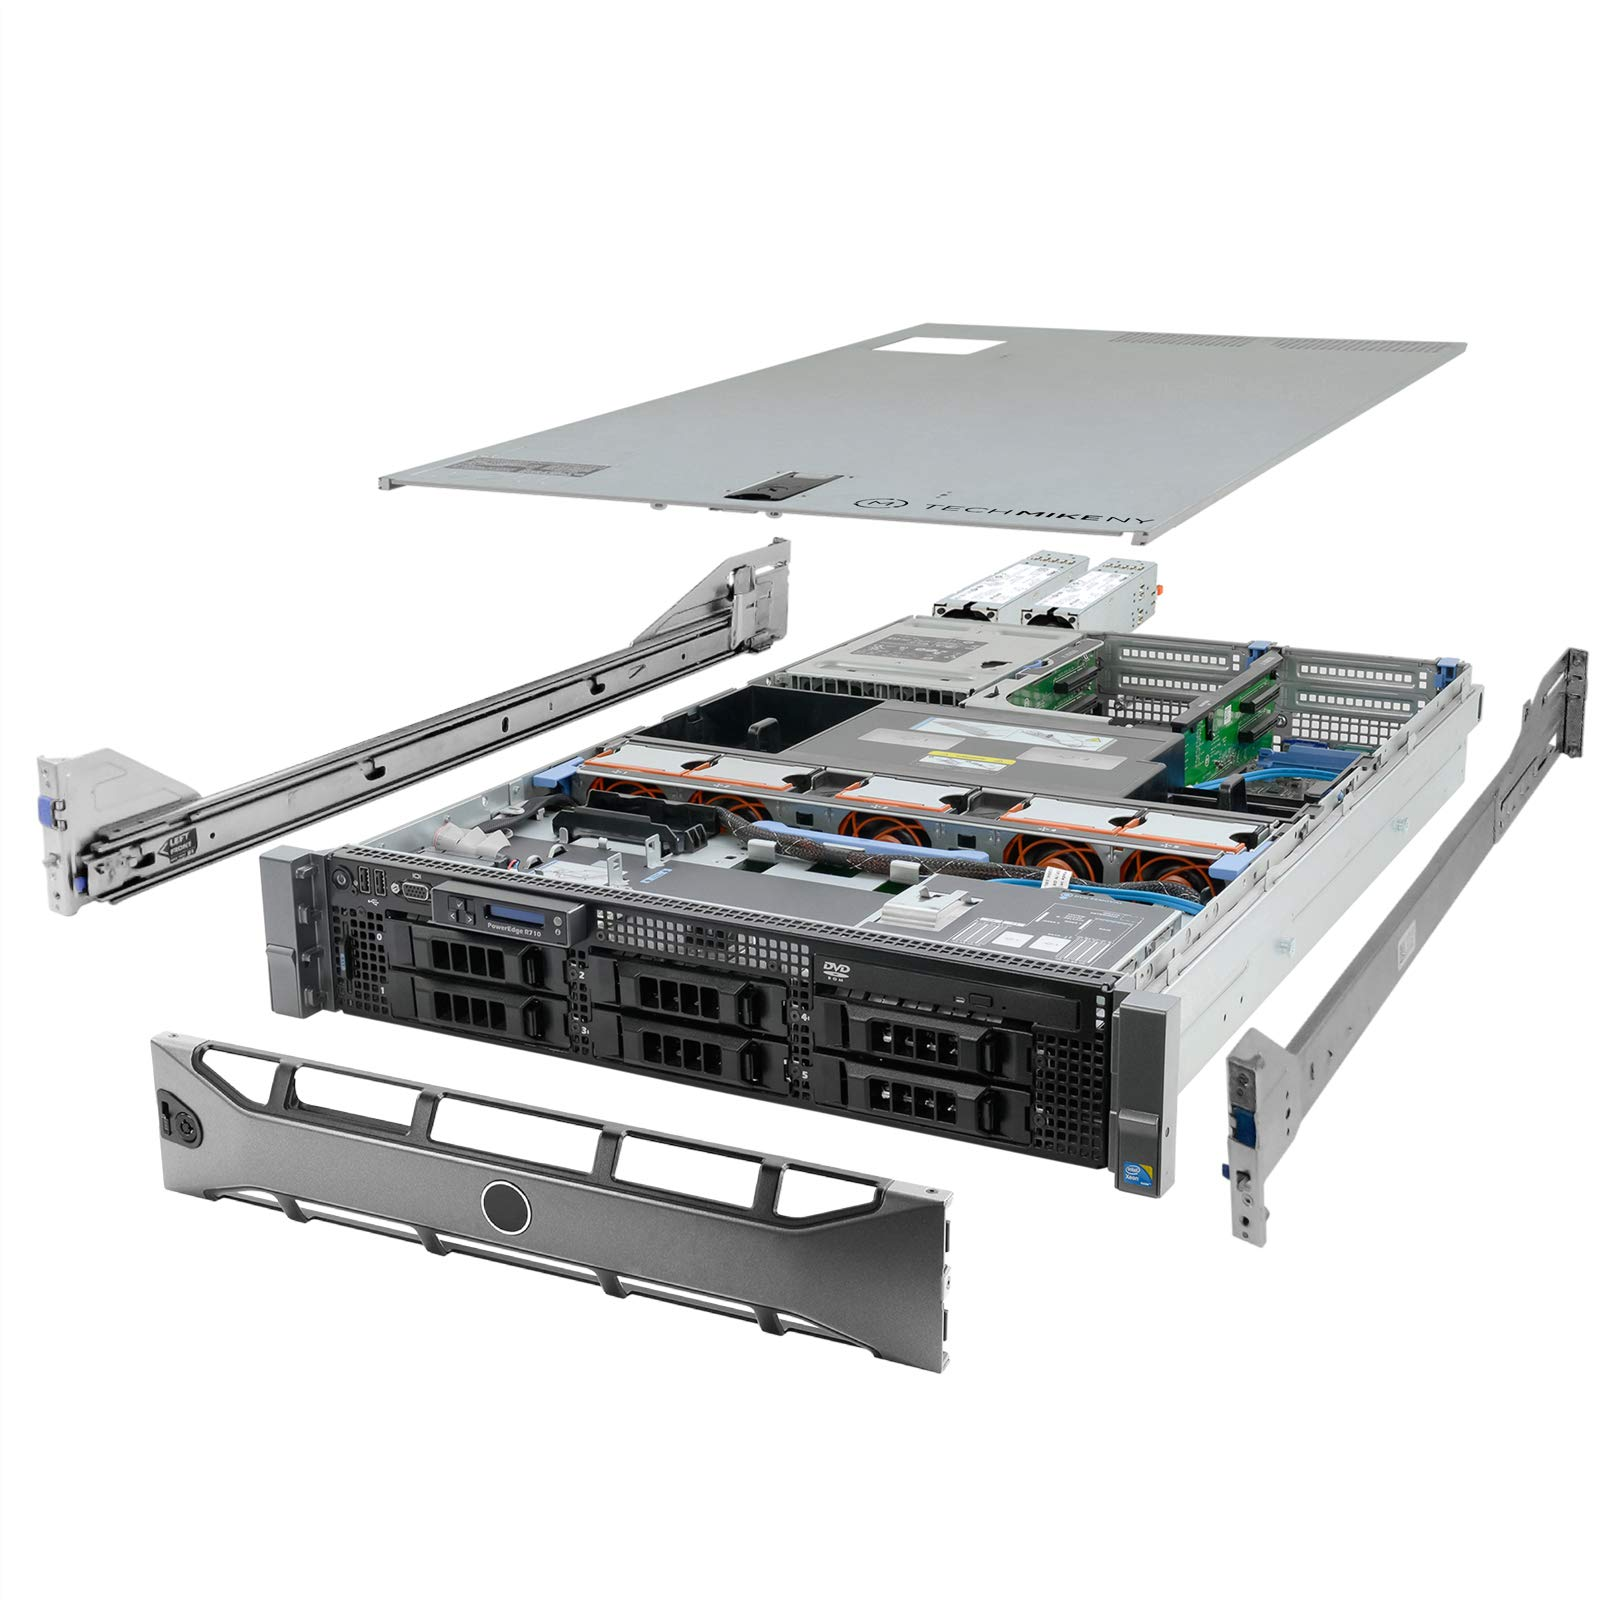 High-End Virtualization Server 12-Core 128GB RAM 12TB RAID Dell PowerEdge R710 Bezel and Rails (Renewed) by Dell